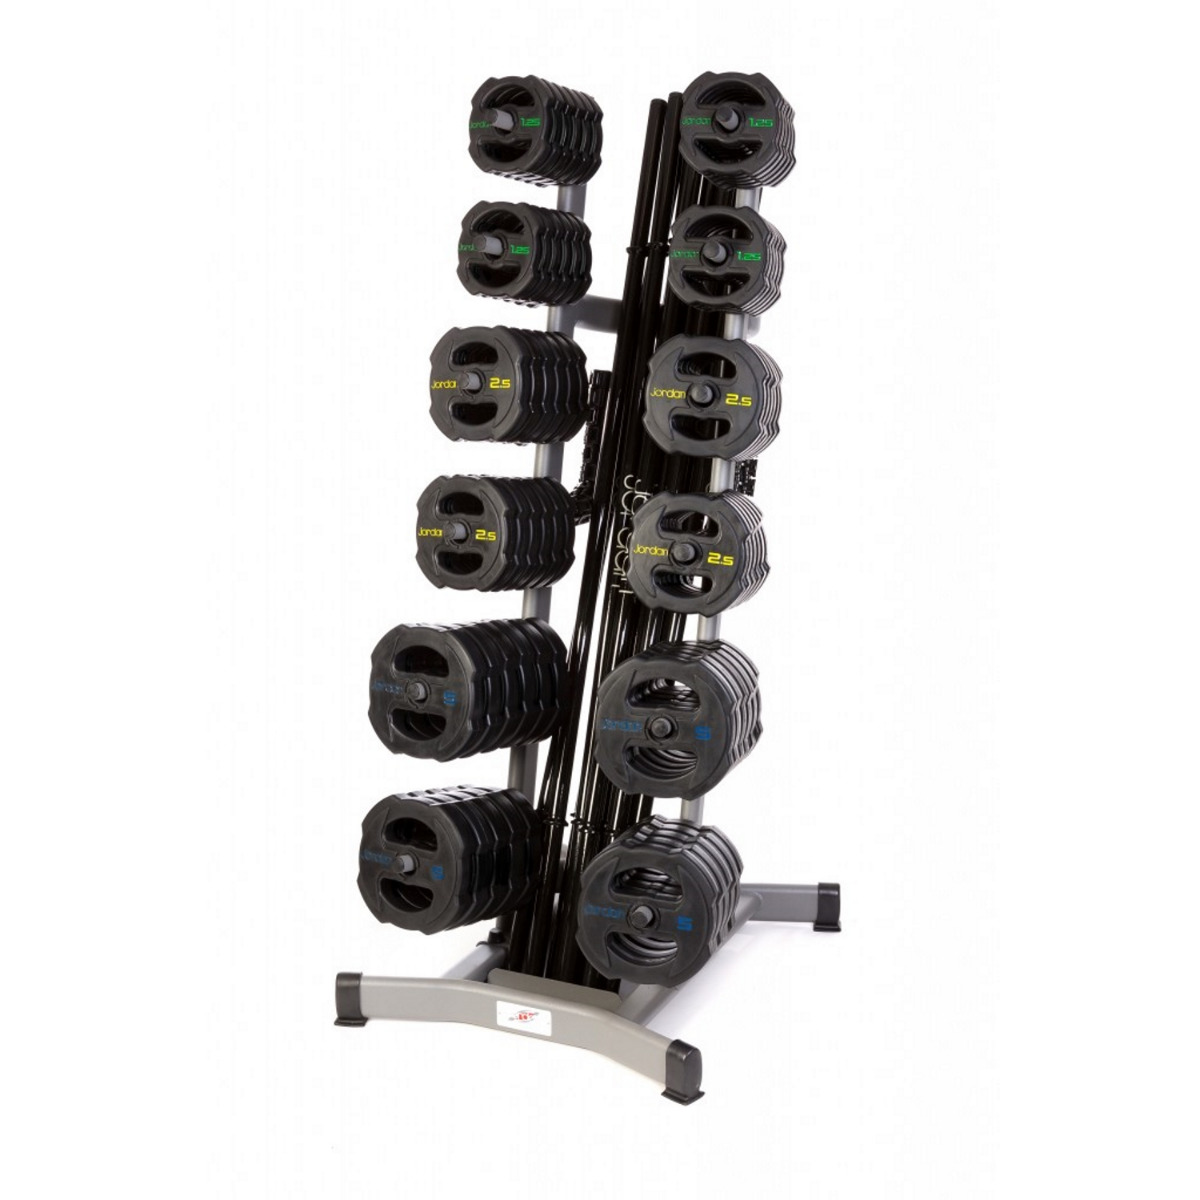 12 x Jordan Ignite V2 Rubber Studio Barbell Sets & Rack